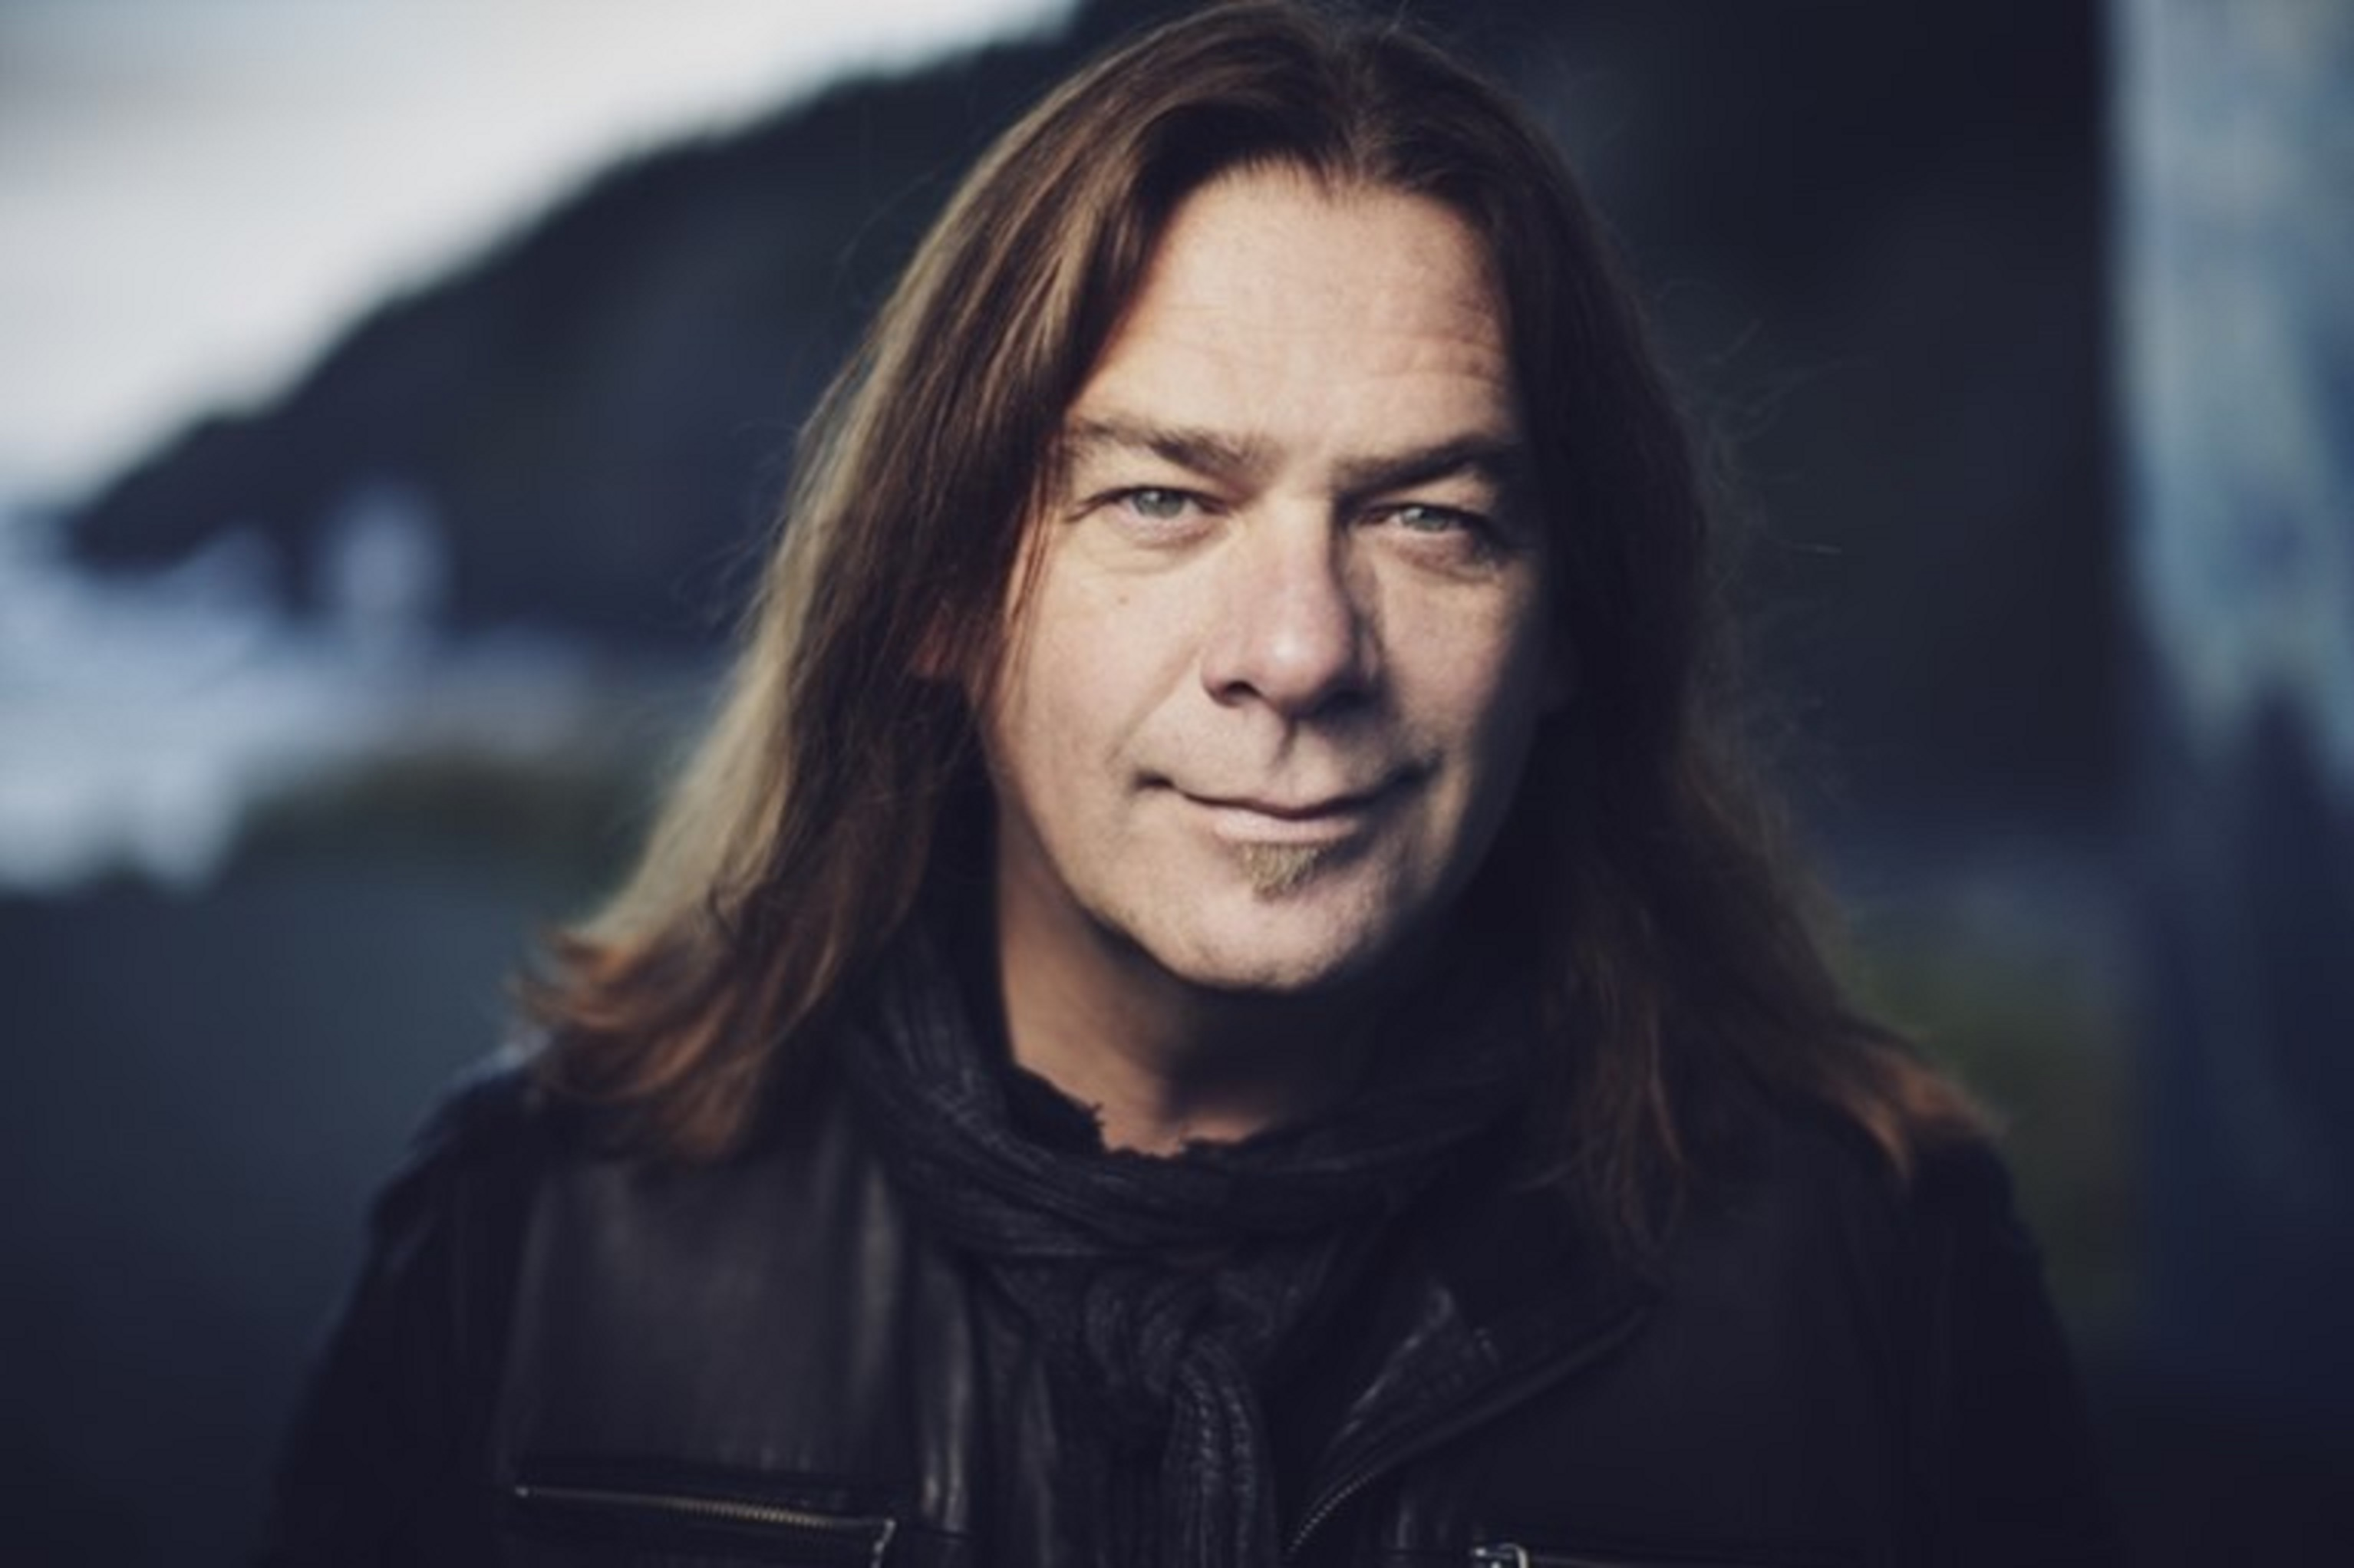 ALAN DOYLE ANNOUNCES NEW EP BACK TO THE HARBOUR OUT MAY 21